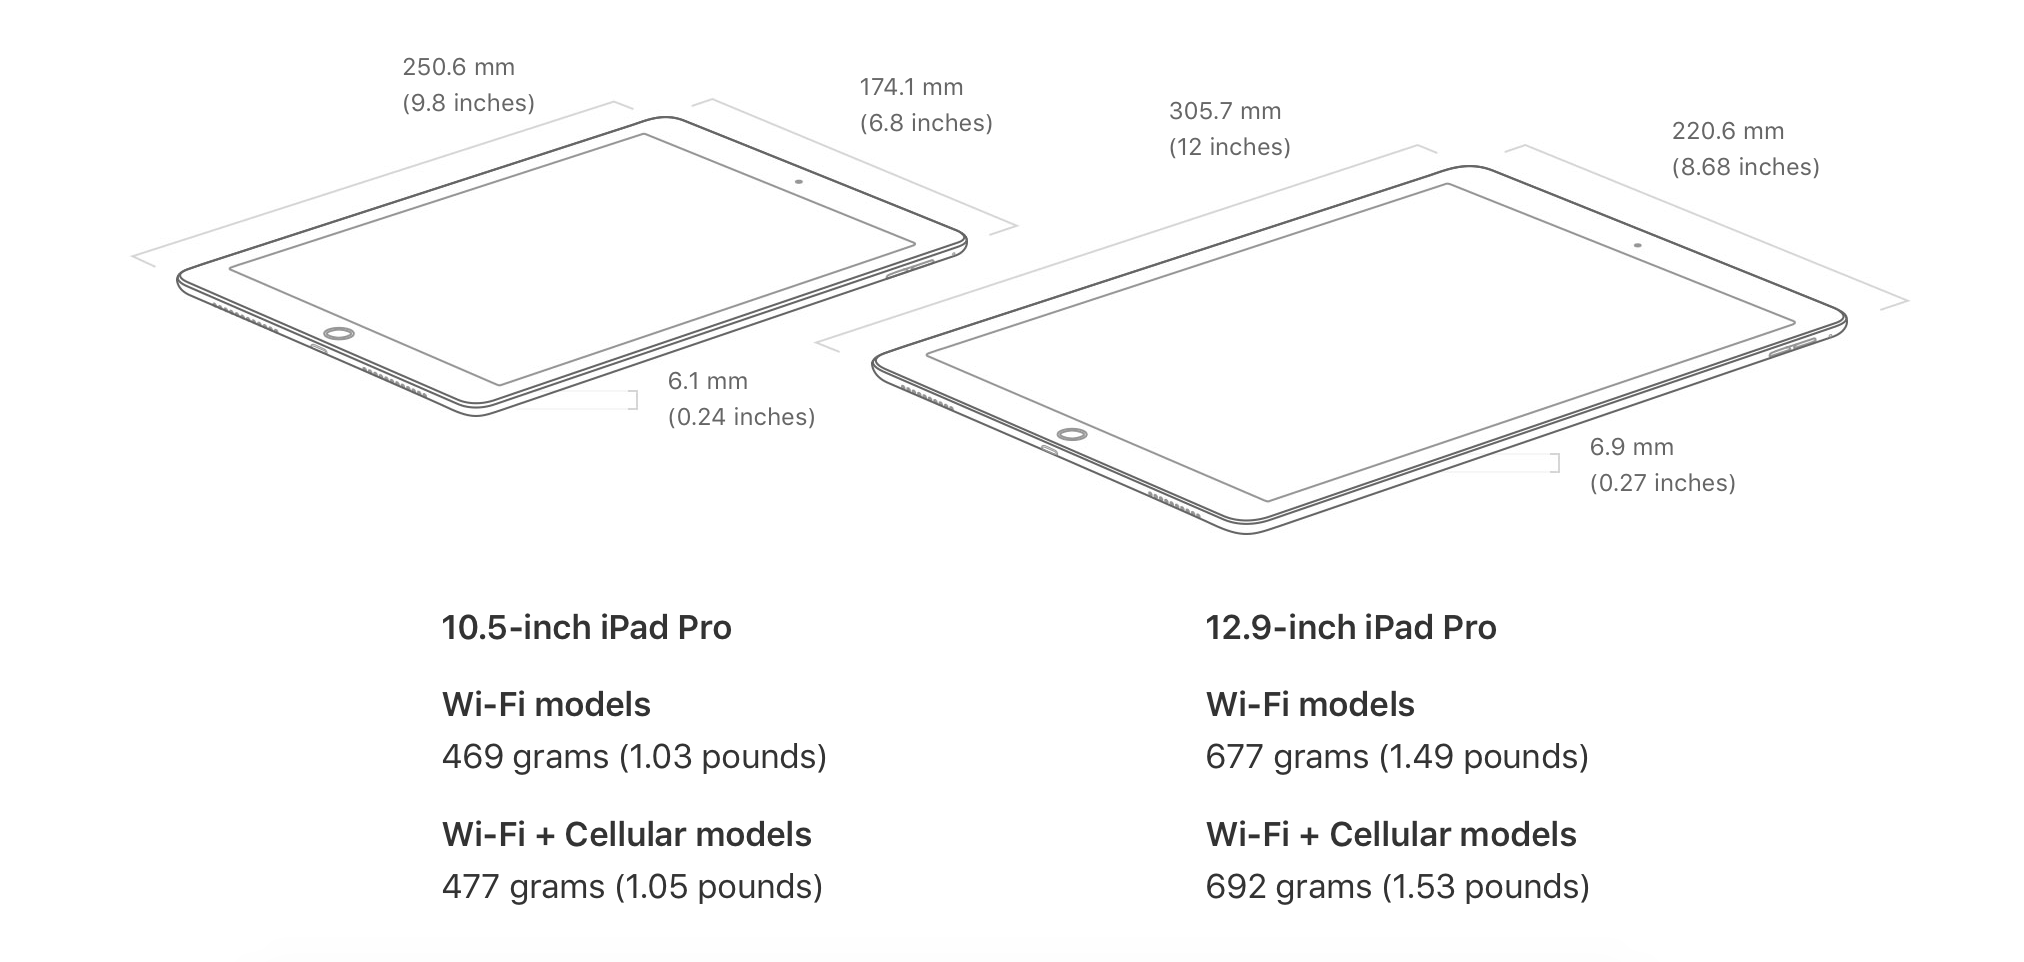 Dimensions of the iPad Pro 10.5 and iPad Pro 12.9